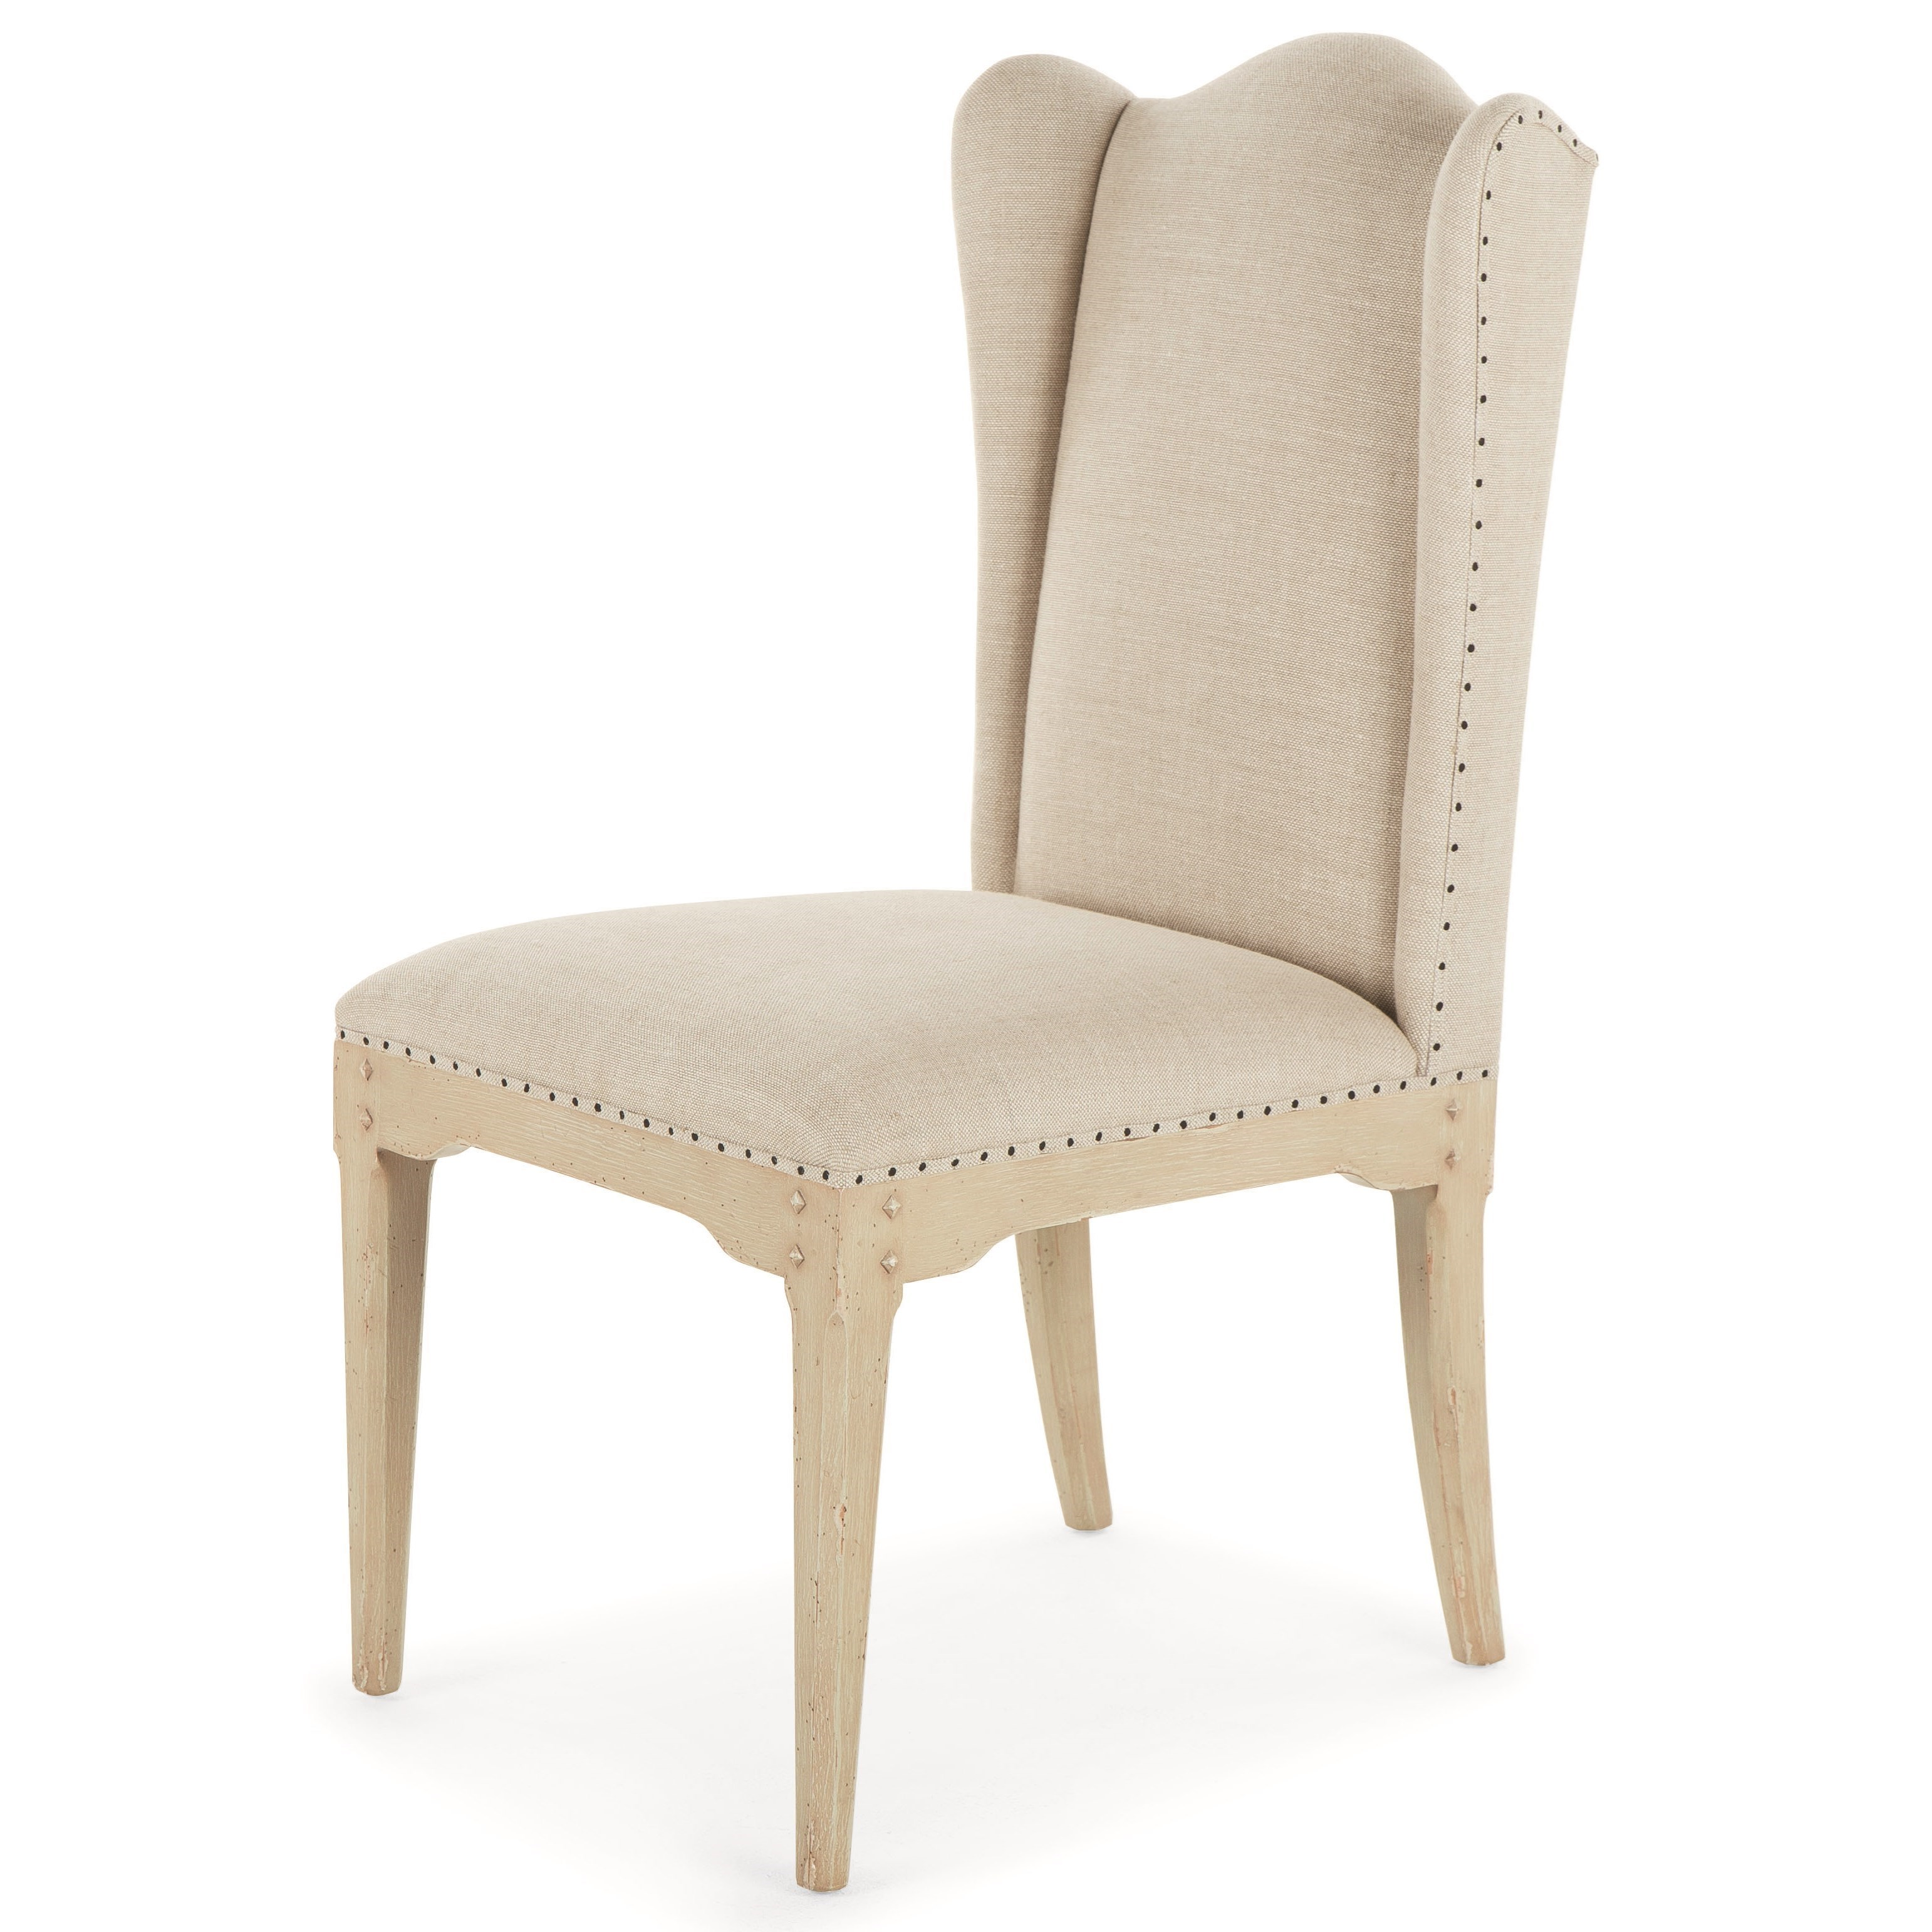 Monarch Fine Furniture Hannah Dining Chair by Century at Baer's Furniture